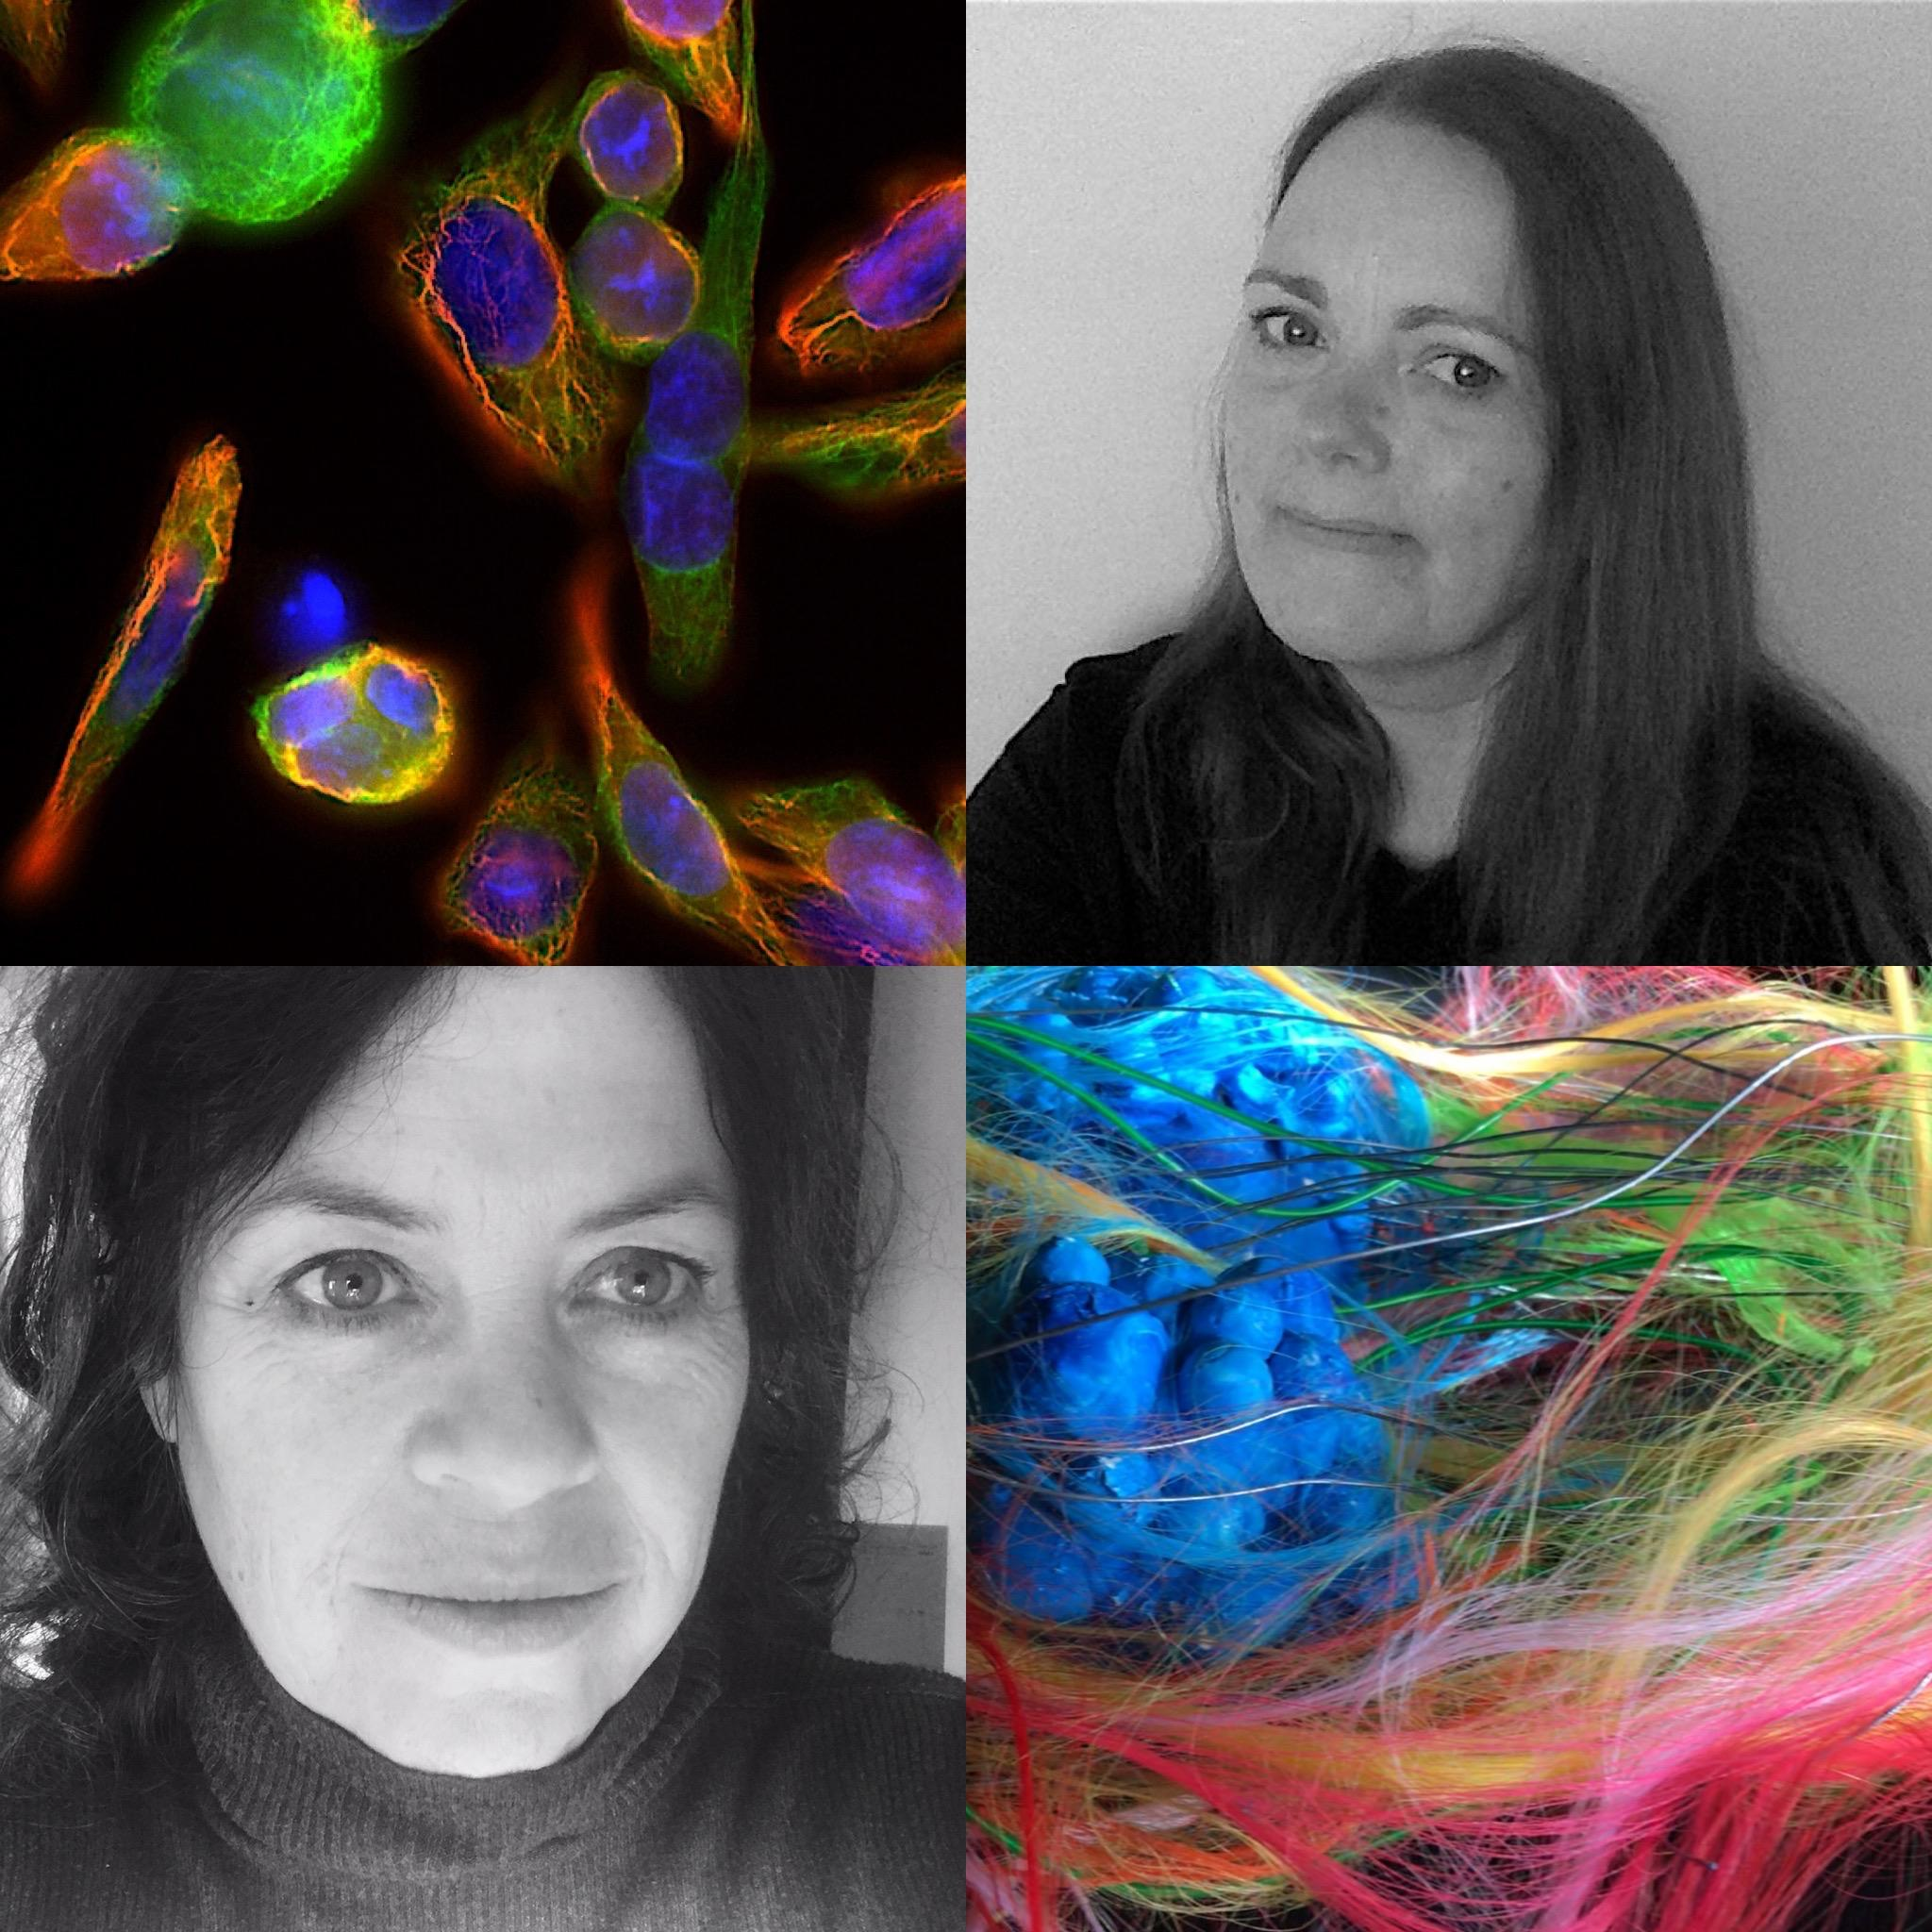 Collage of both project investigators and cell images